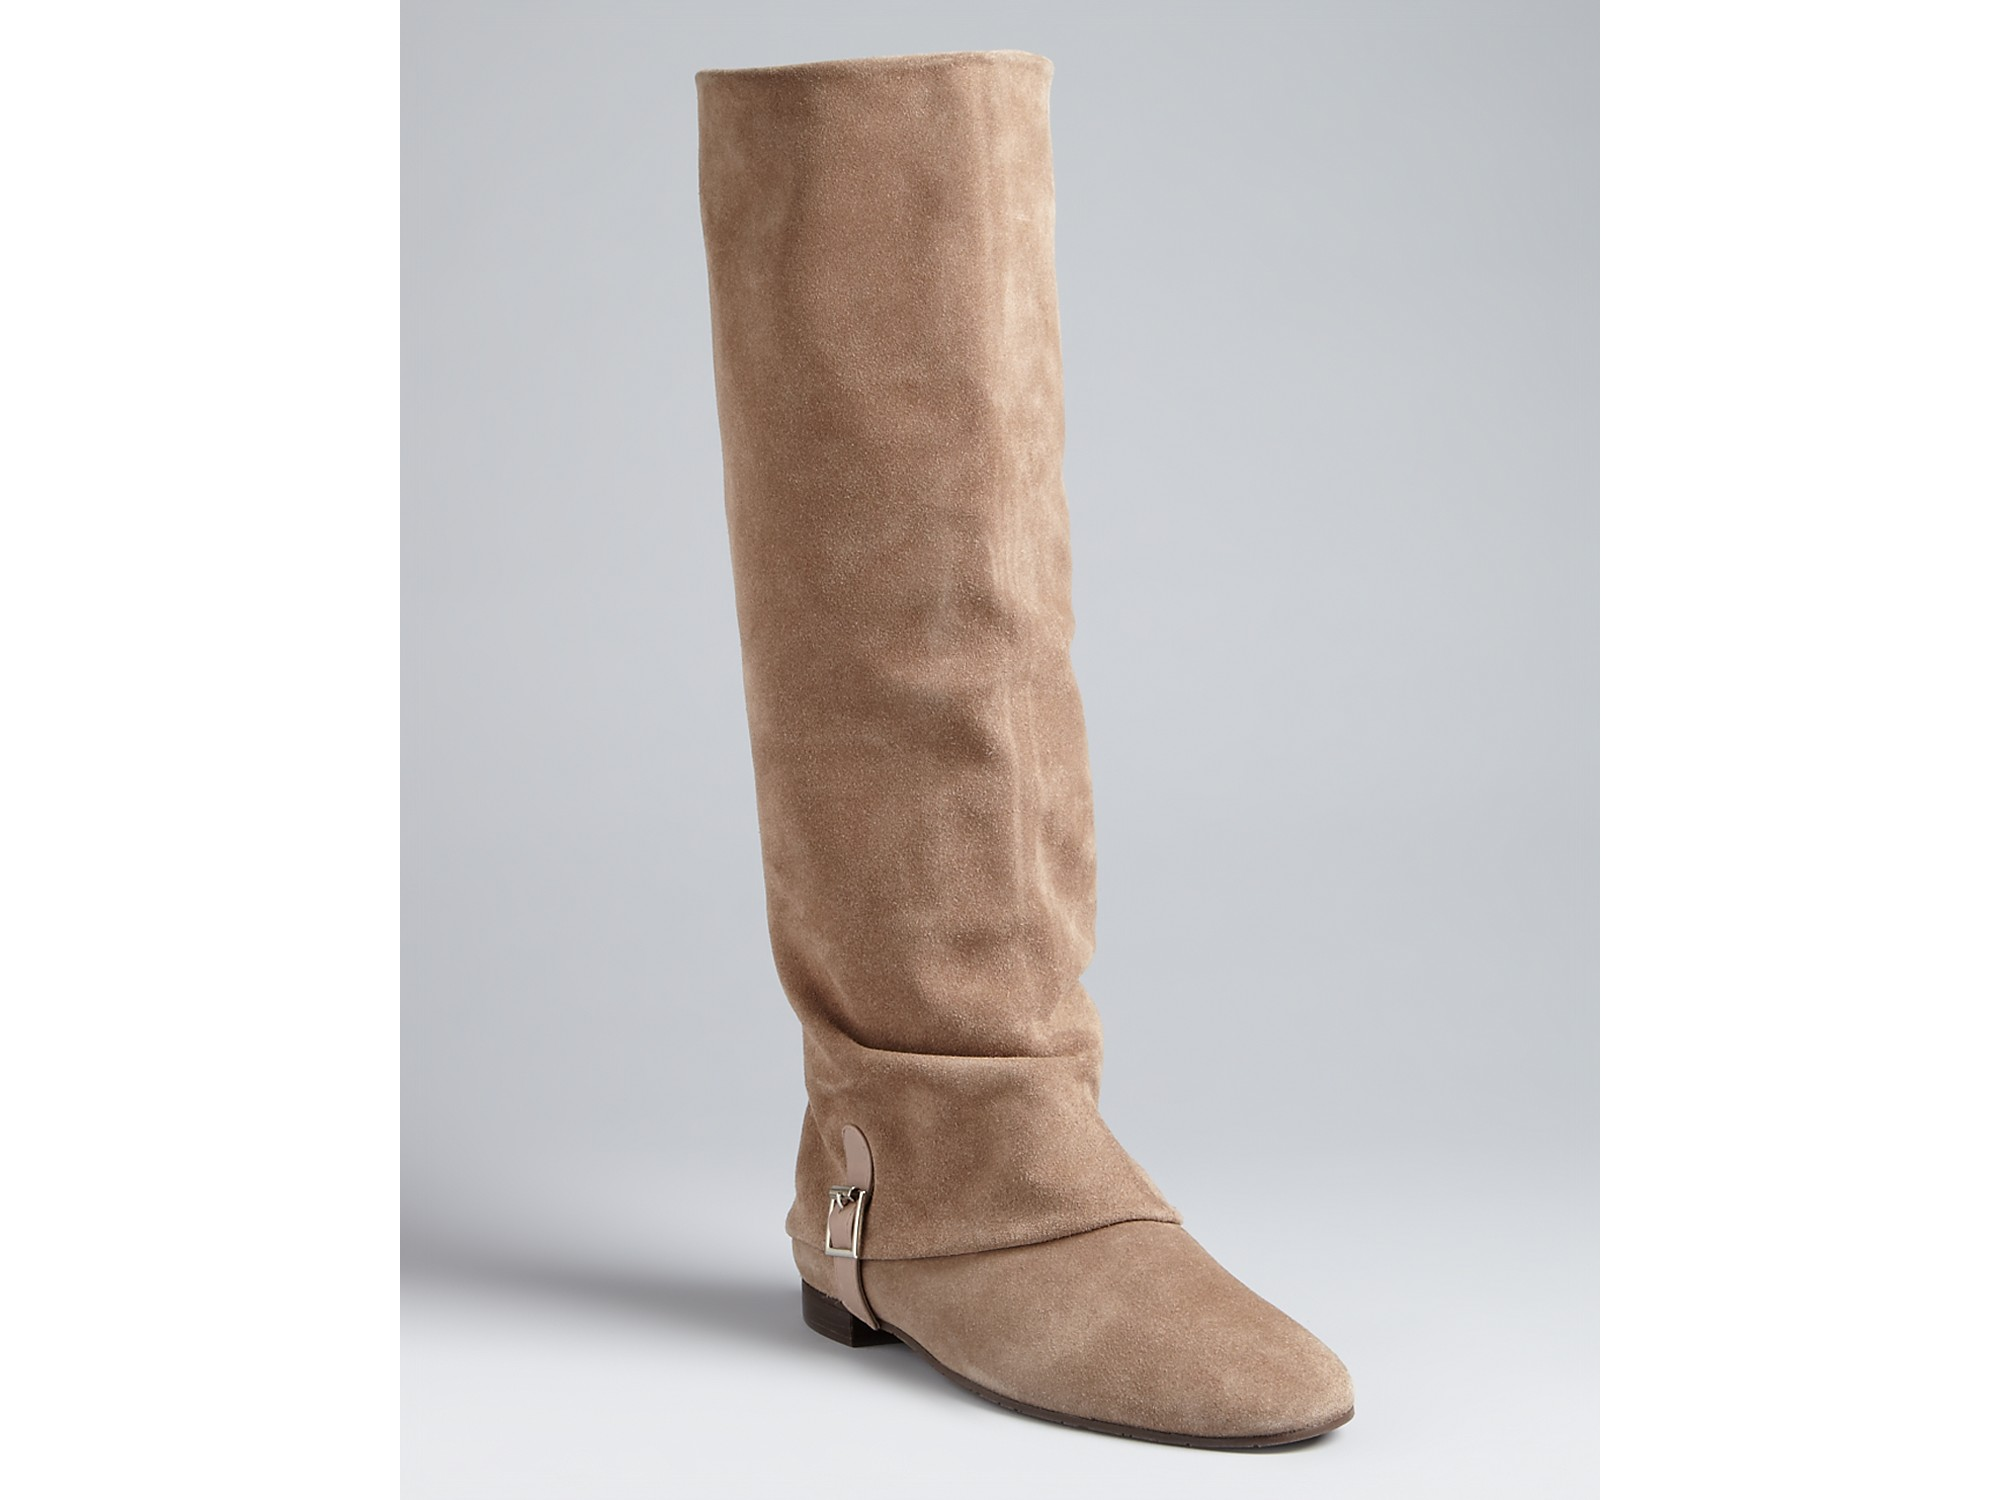 Delman Tall Flat Boots June in Taupe